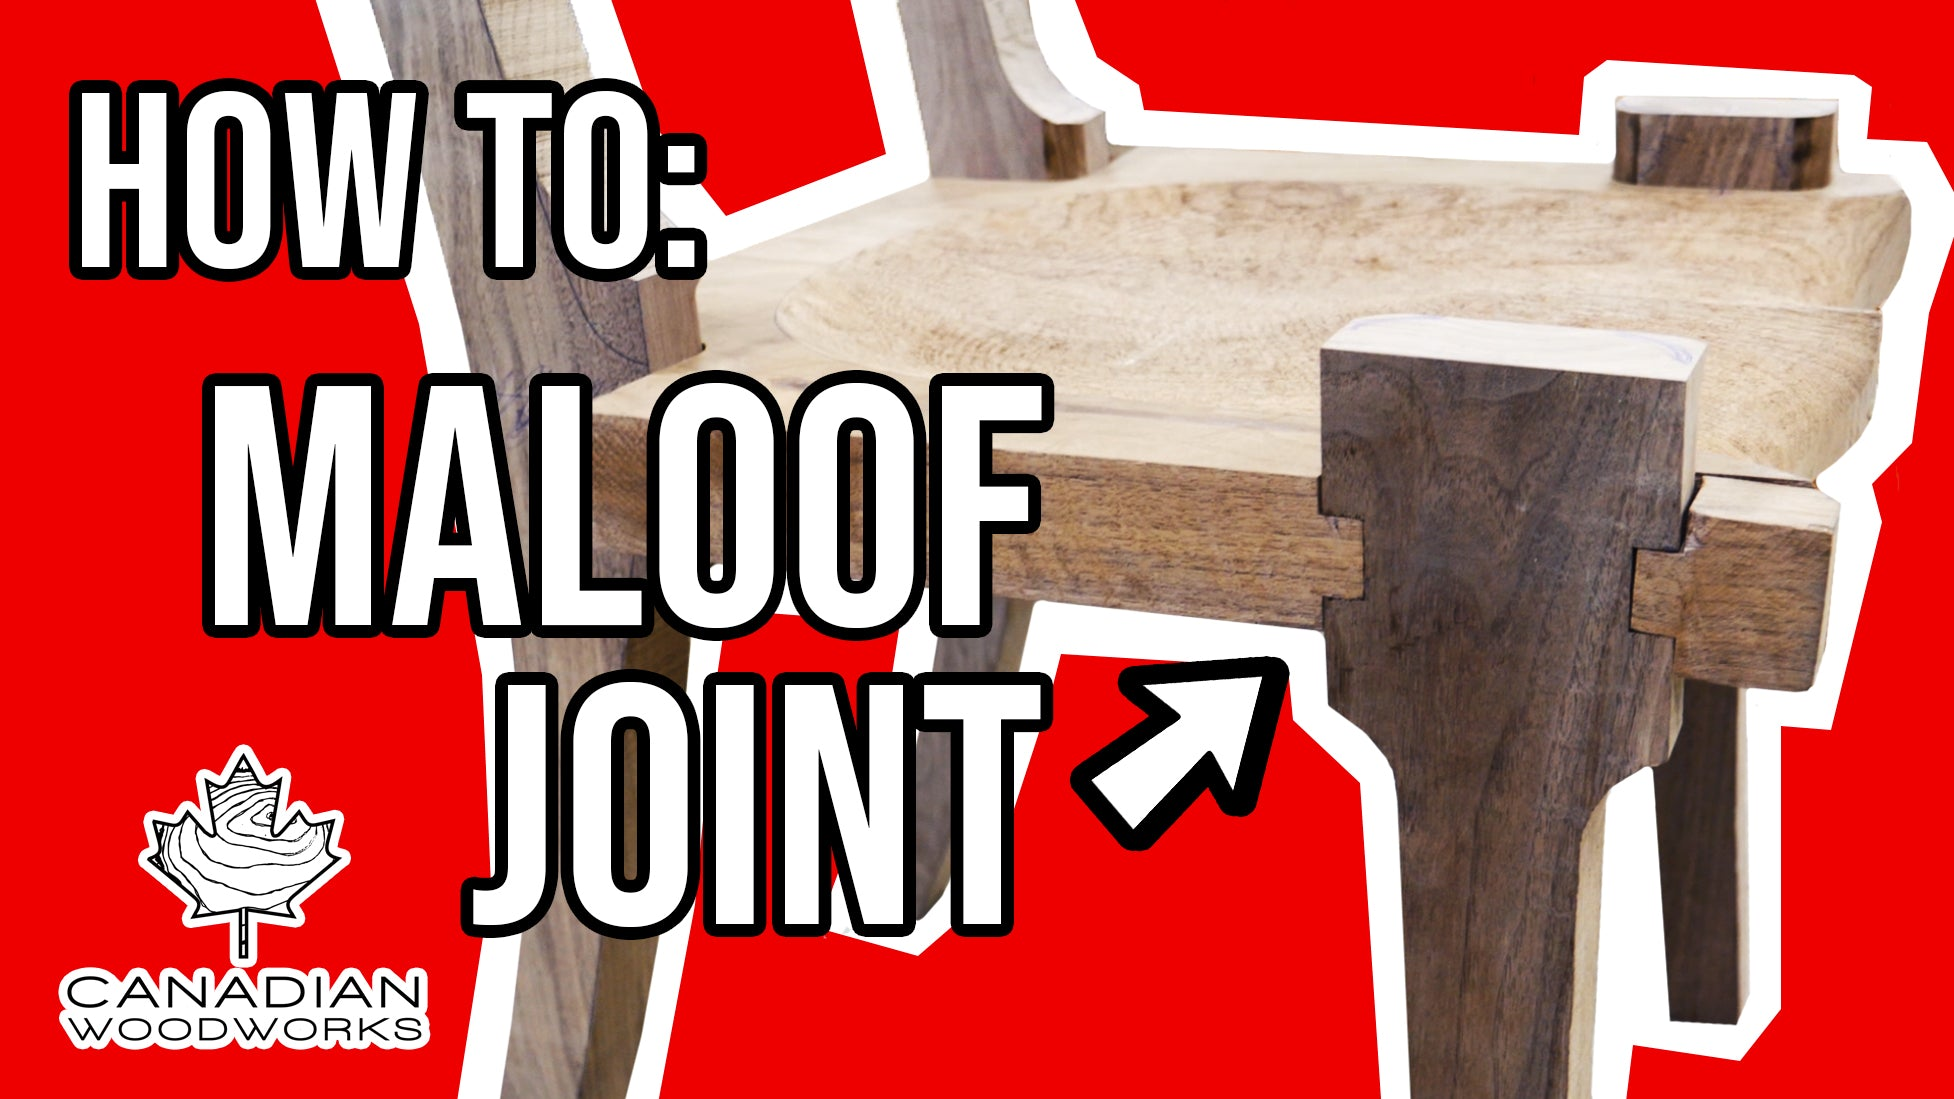 Making a Maloof Joint